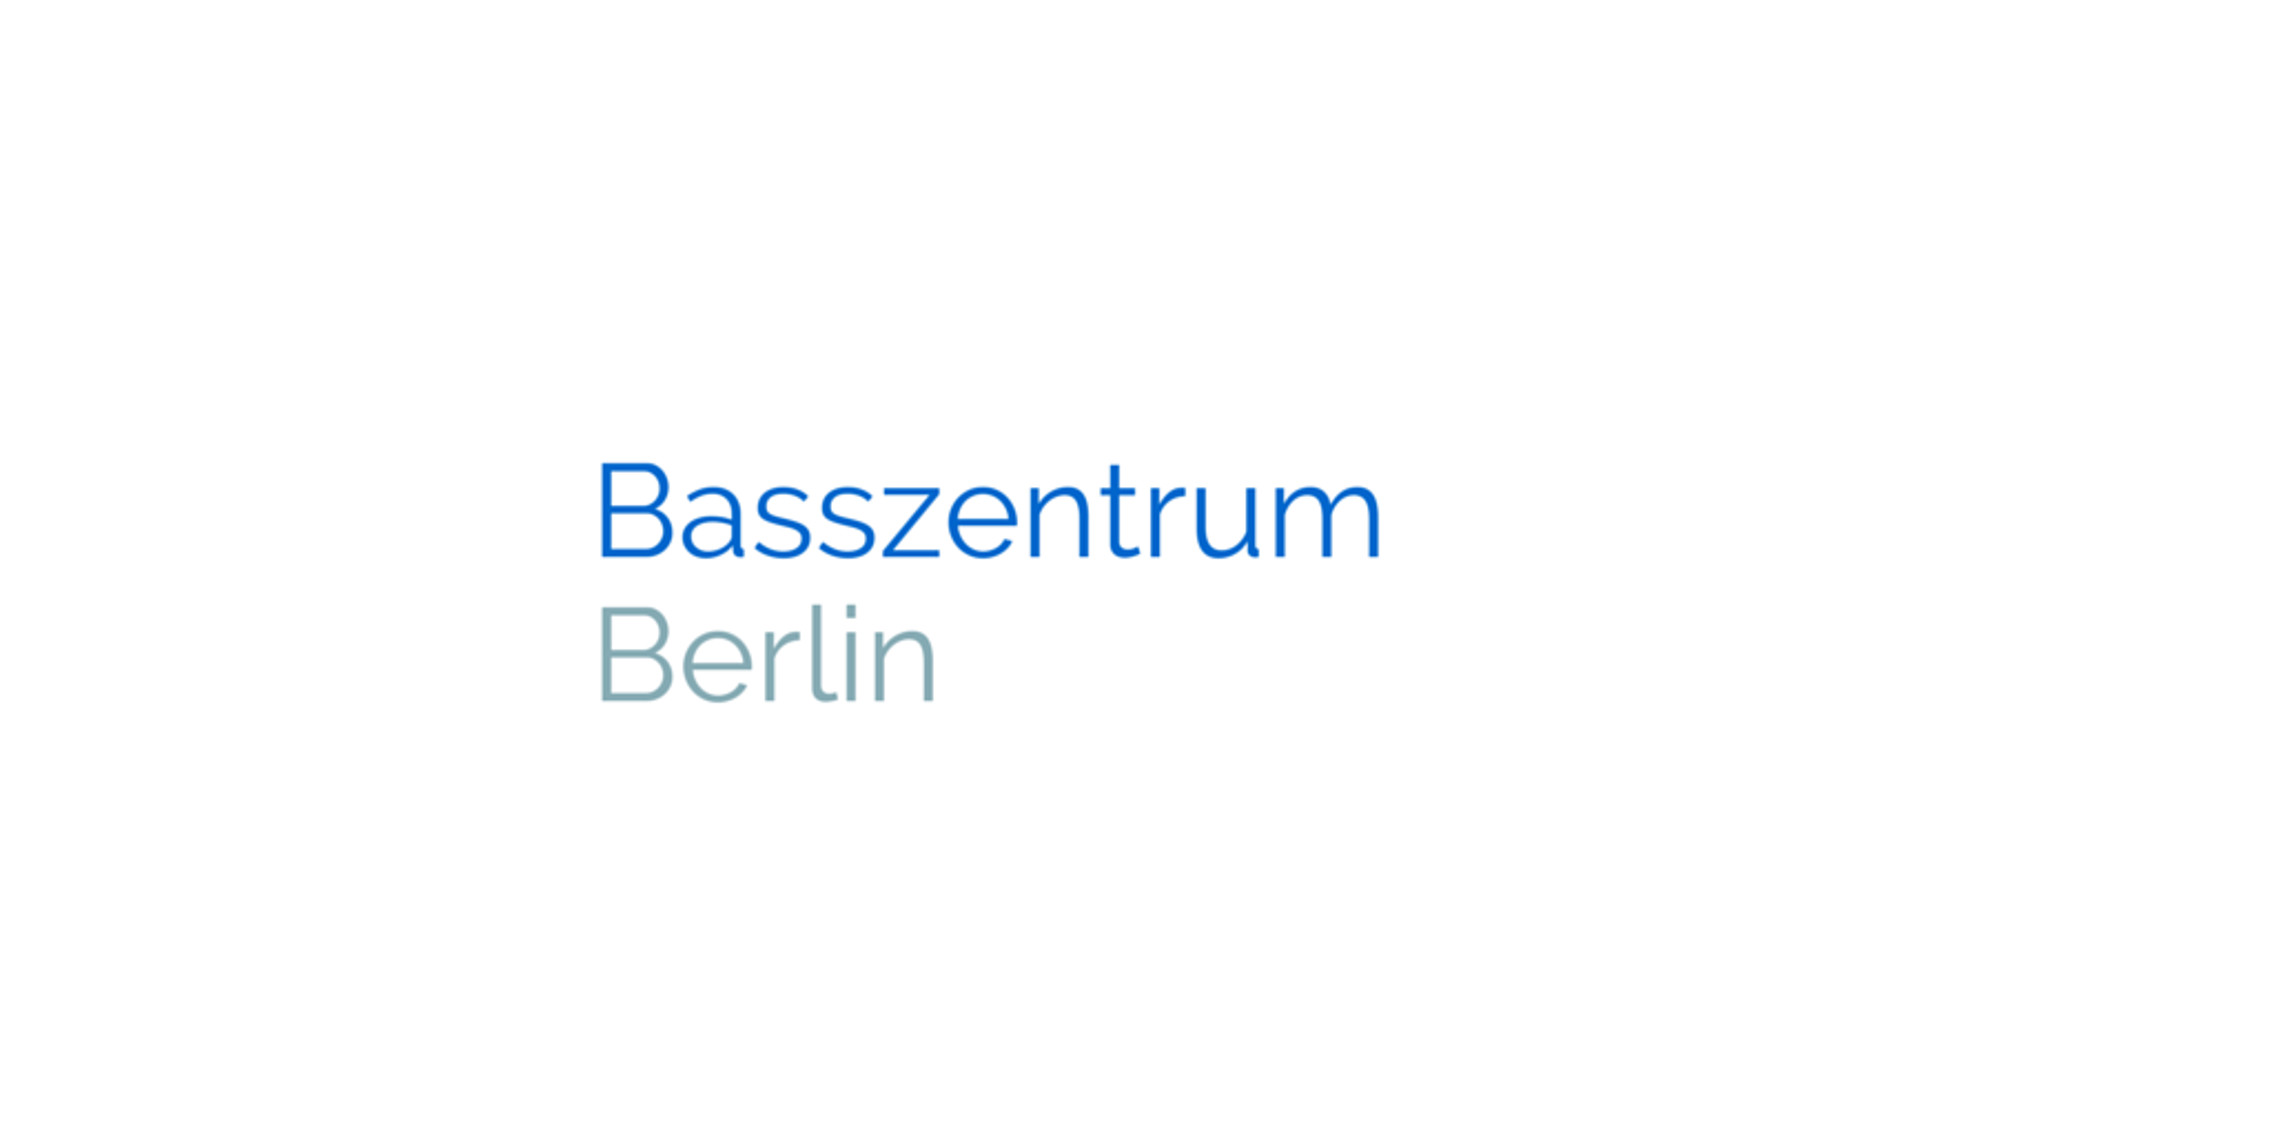 Basszentrum Berlin